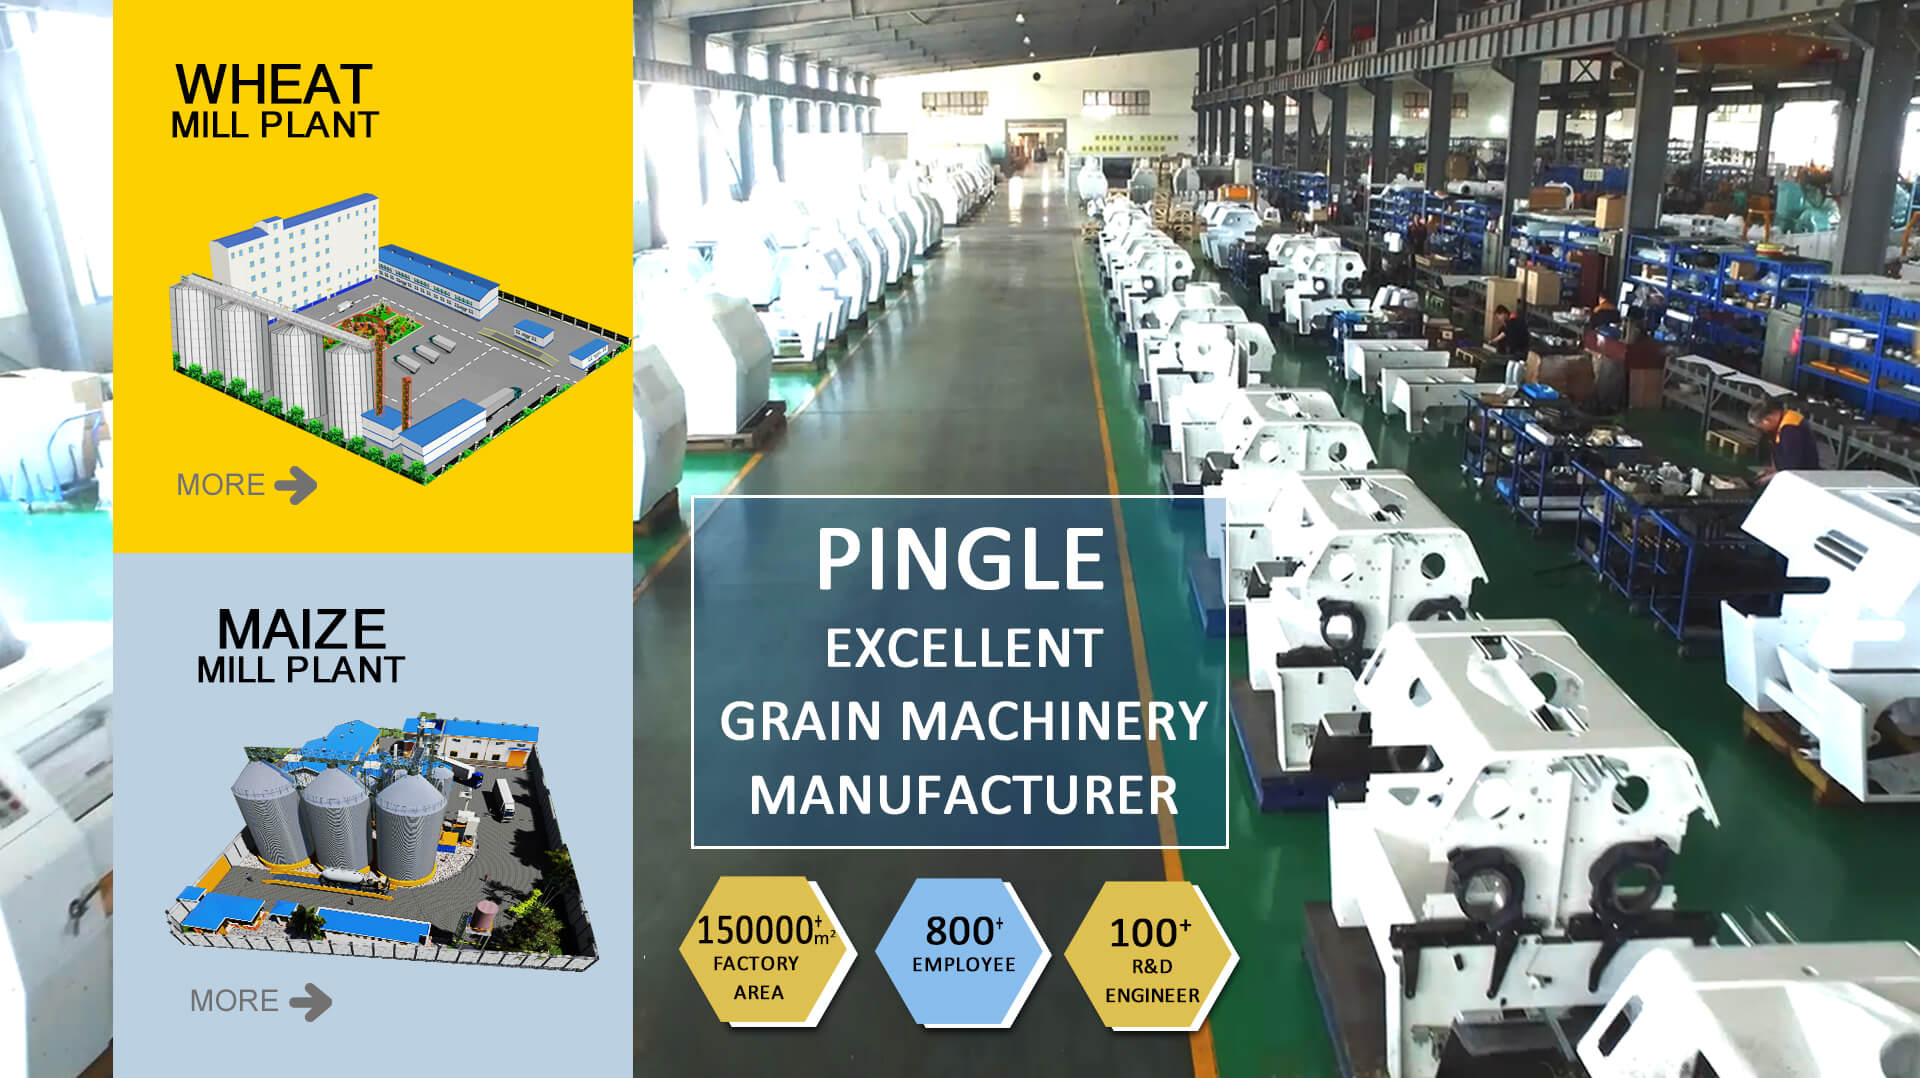 Pingle Excellent Grain Machinery Manufacturer